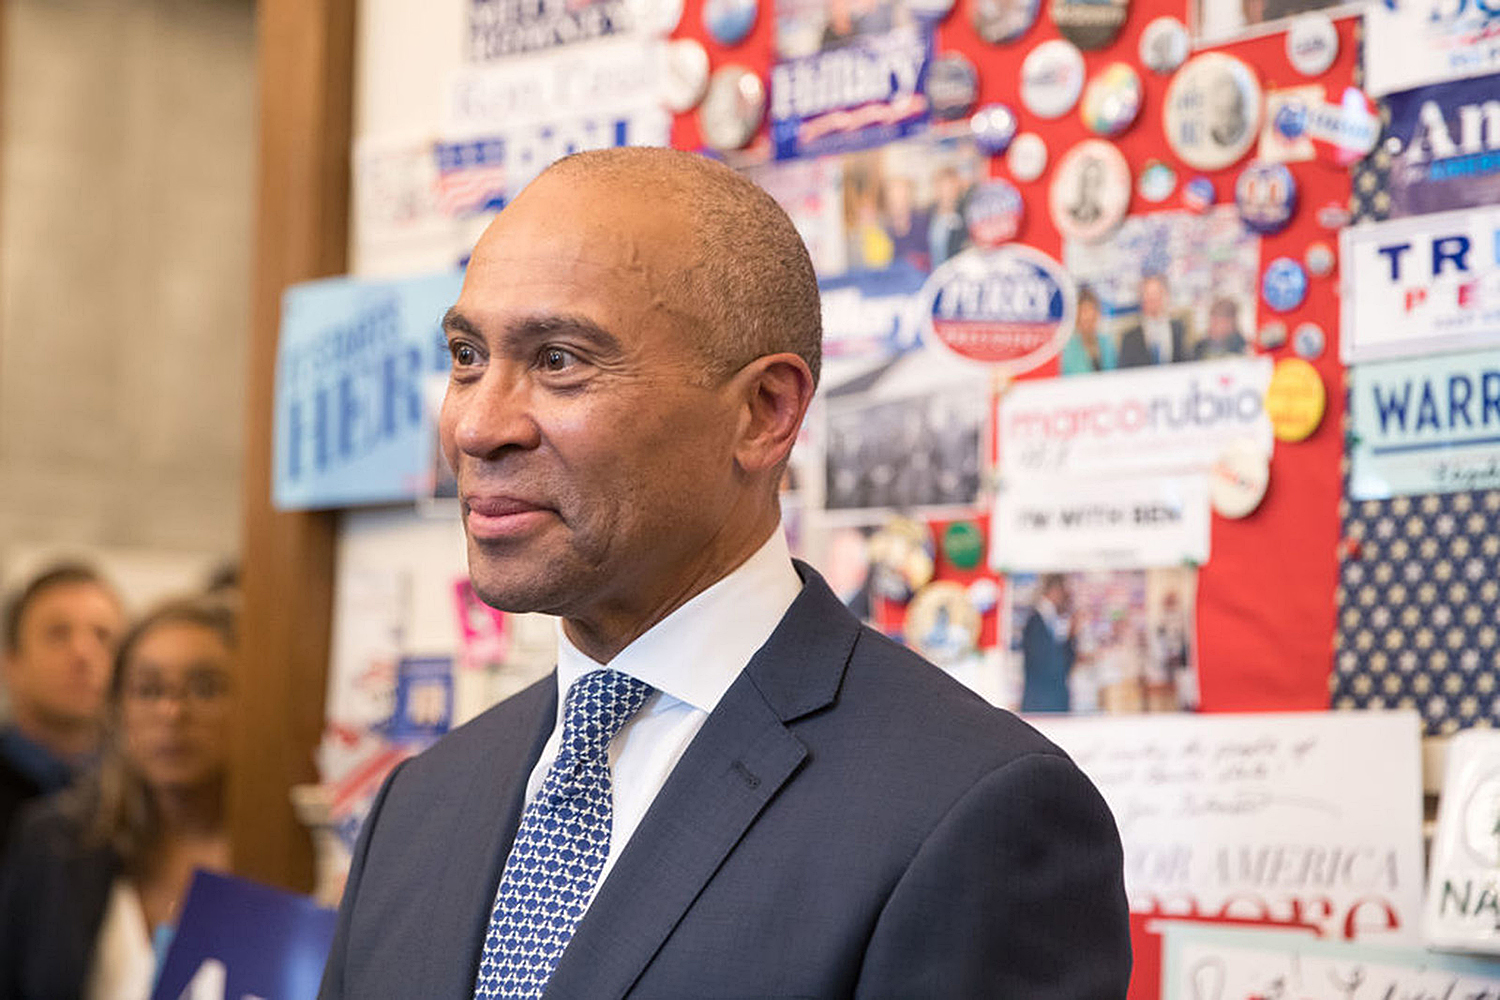 Former Massachusetts Governor Deval Patrick stands in the visitor center of the New Hampshire State House after he filed his paperwork to run for president in 2020 at the New Hampshire State House on November 14, 2019 in Concord, New Hampshire. Patrick announced his late entry to the presidential race with less than three months to go before the first nominating contest.  (Scott Eisen/Getty Images/TNS)